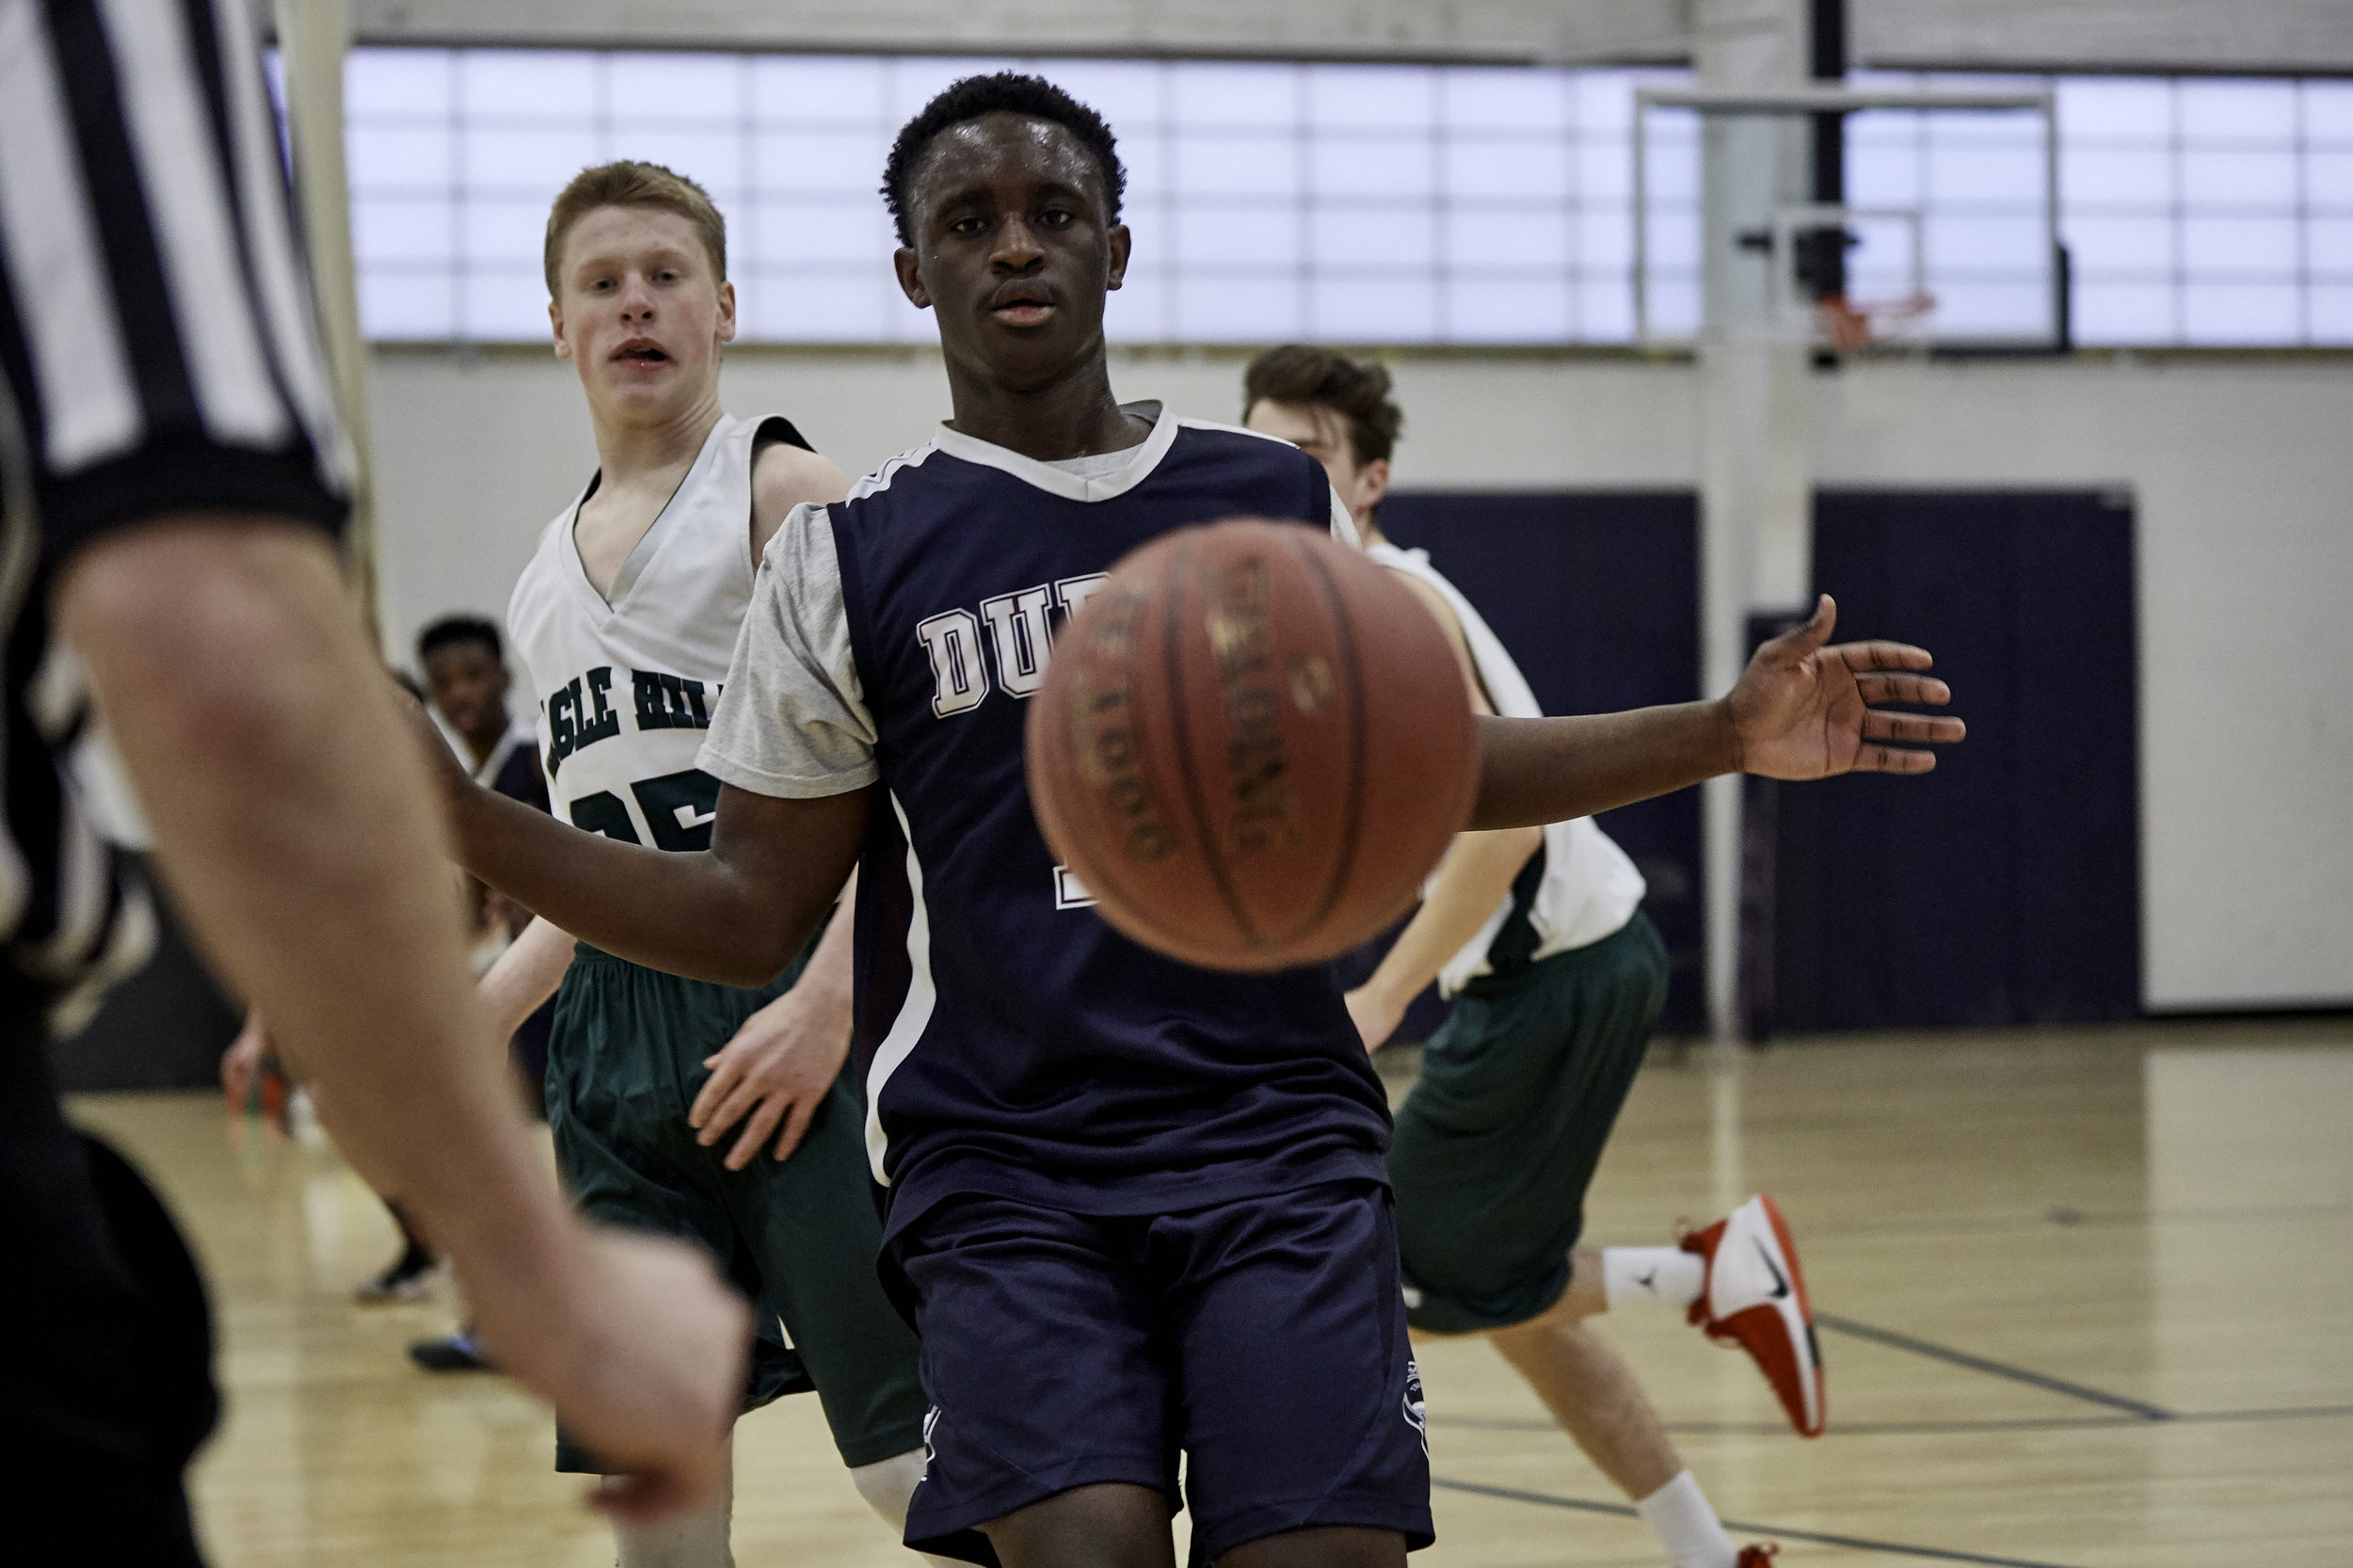 Boys Varsity Basketball vs. Eagle Hill School JV at RVAL Tournament - February 11, 2019 - 167927.jpg